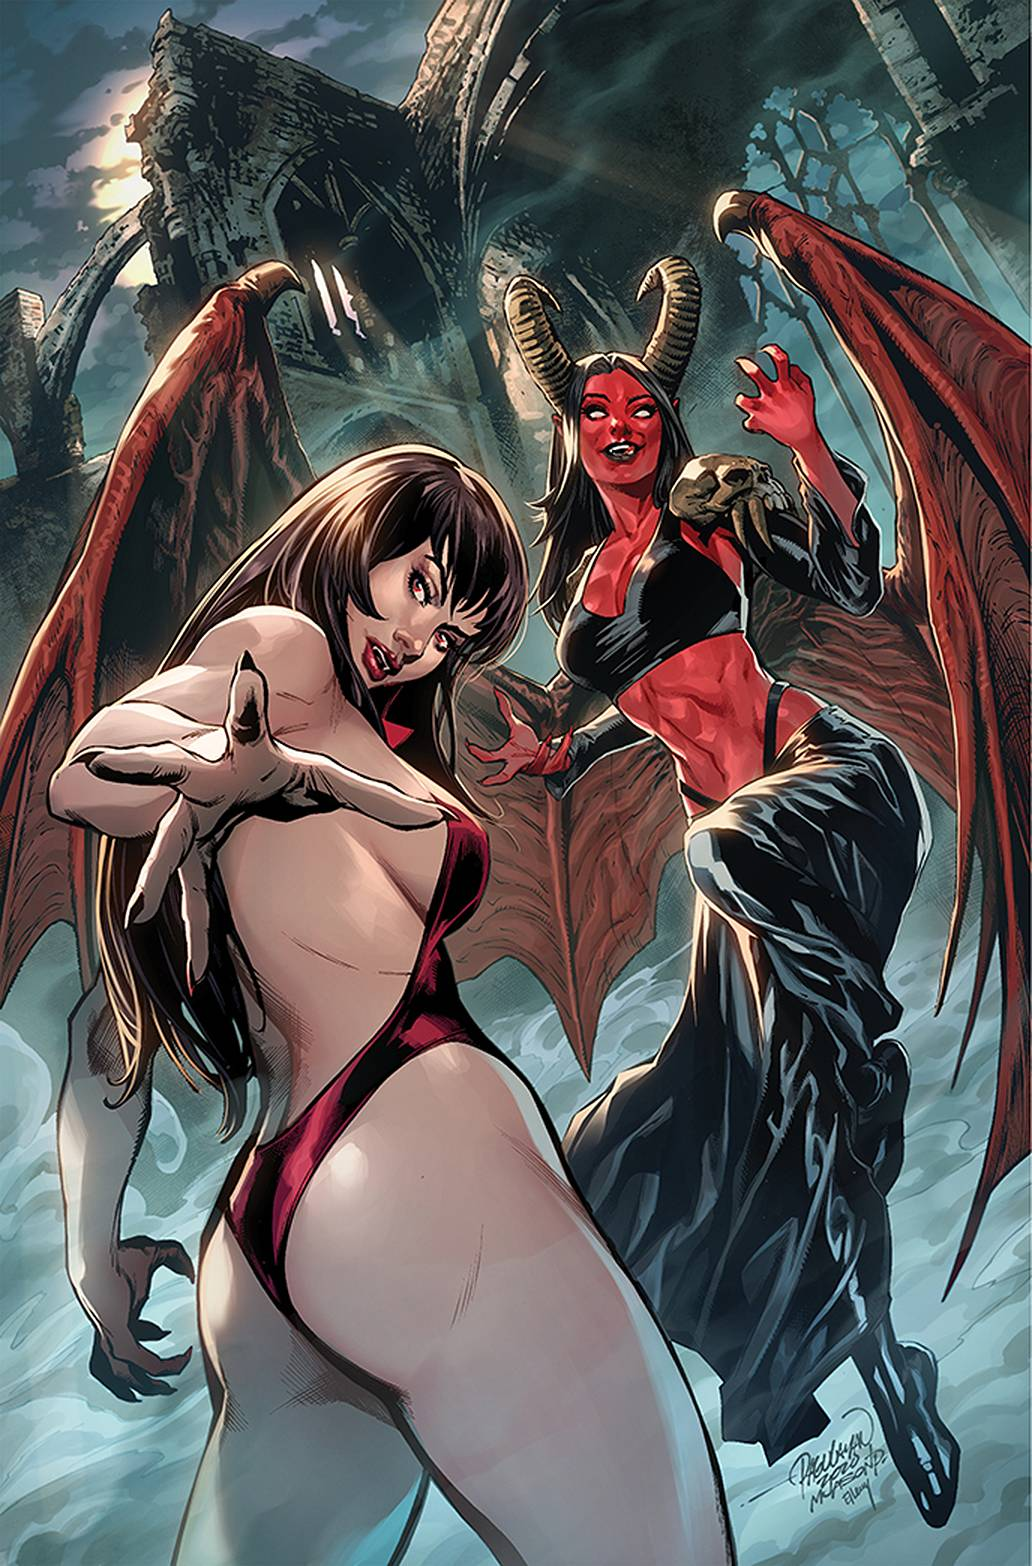 STL179958 ComicList: Dynamite Entertainment New Releases for 03/24/2021